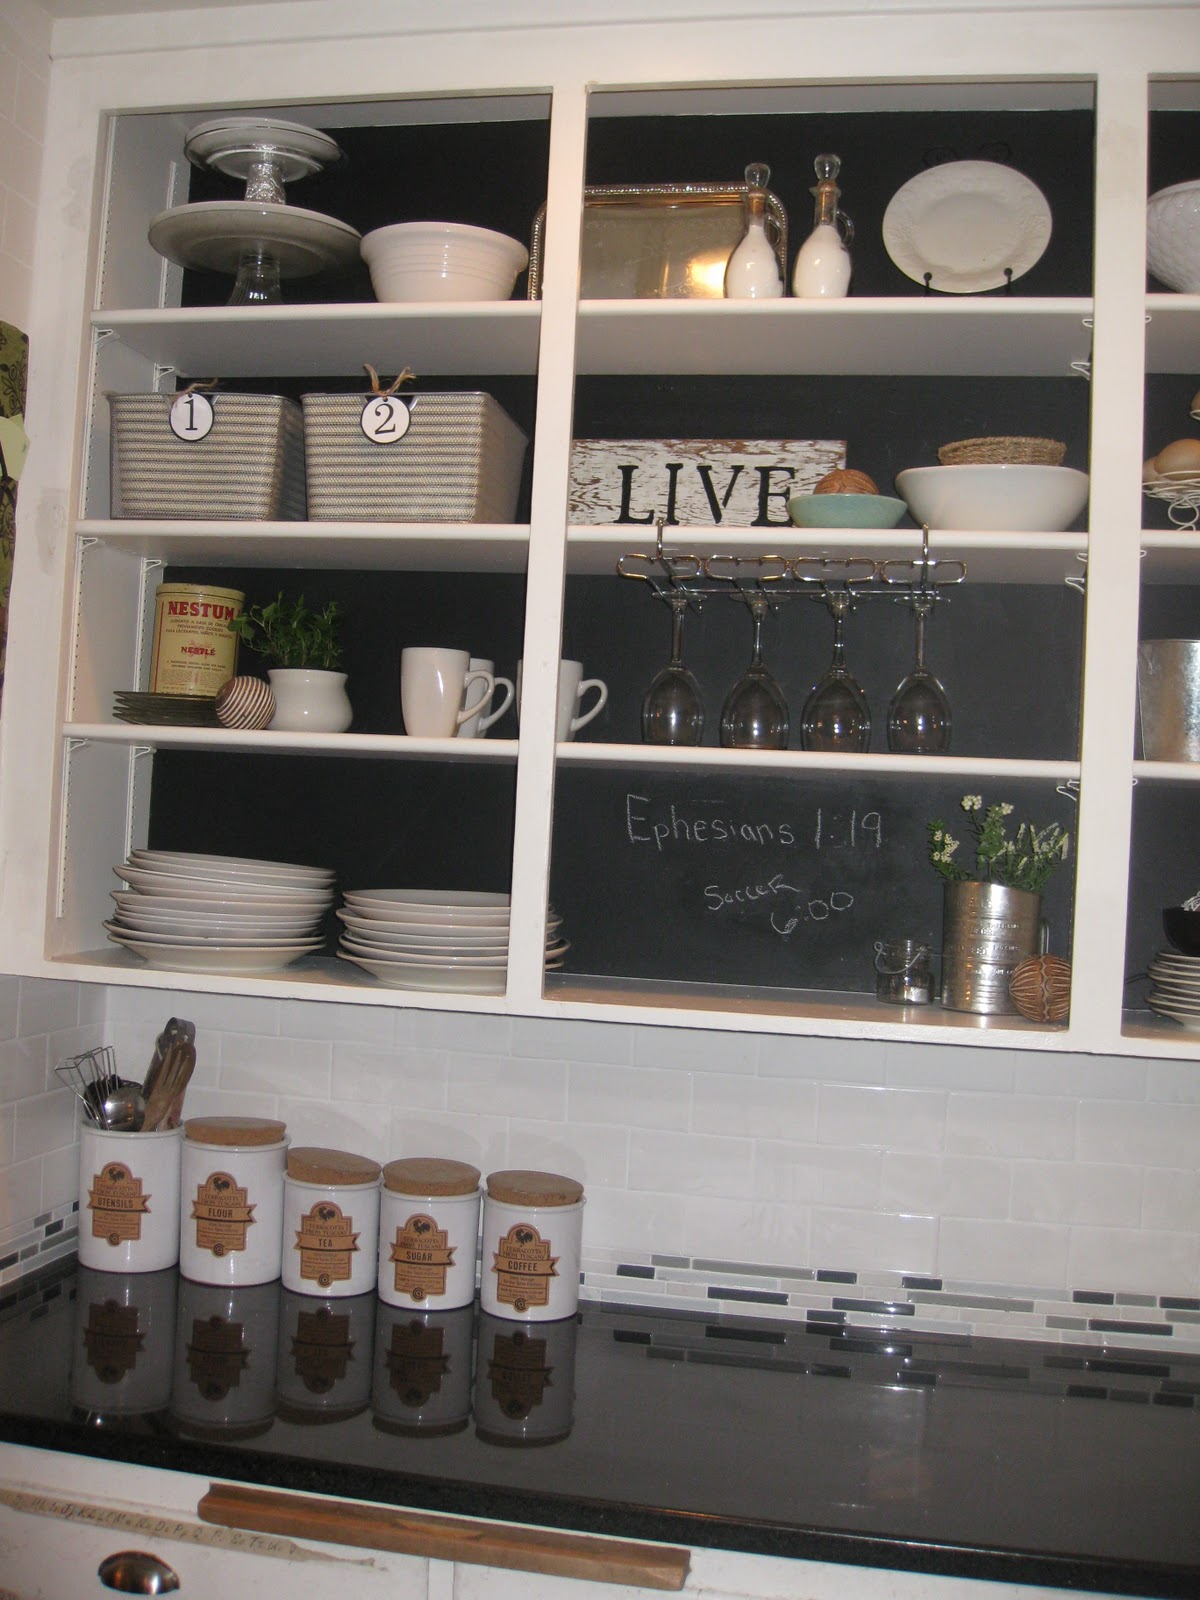 Open Shelving Kitchen Cabinets Diy Chalkboard Cabinets Creatively Living Outside The Box